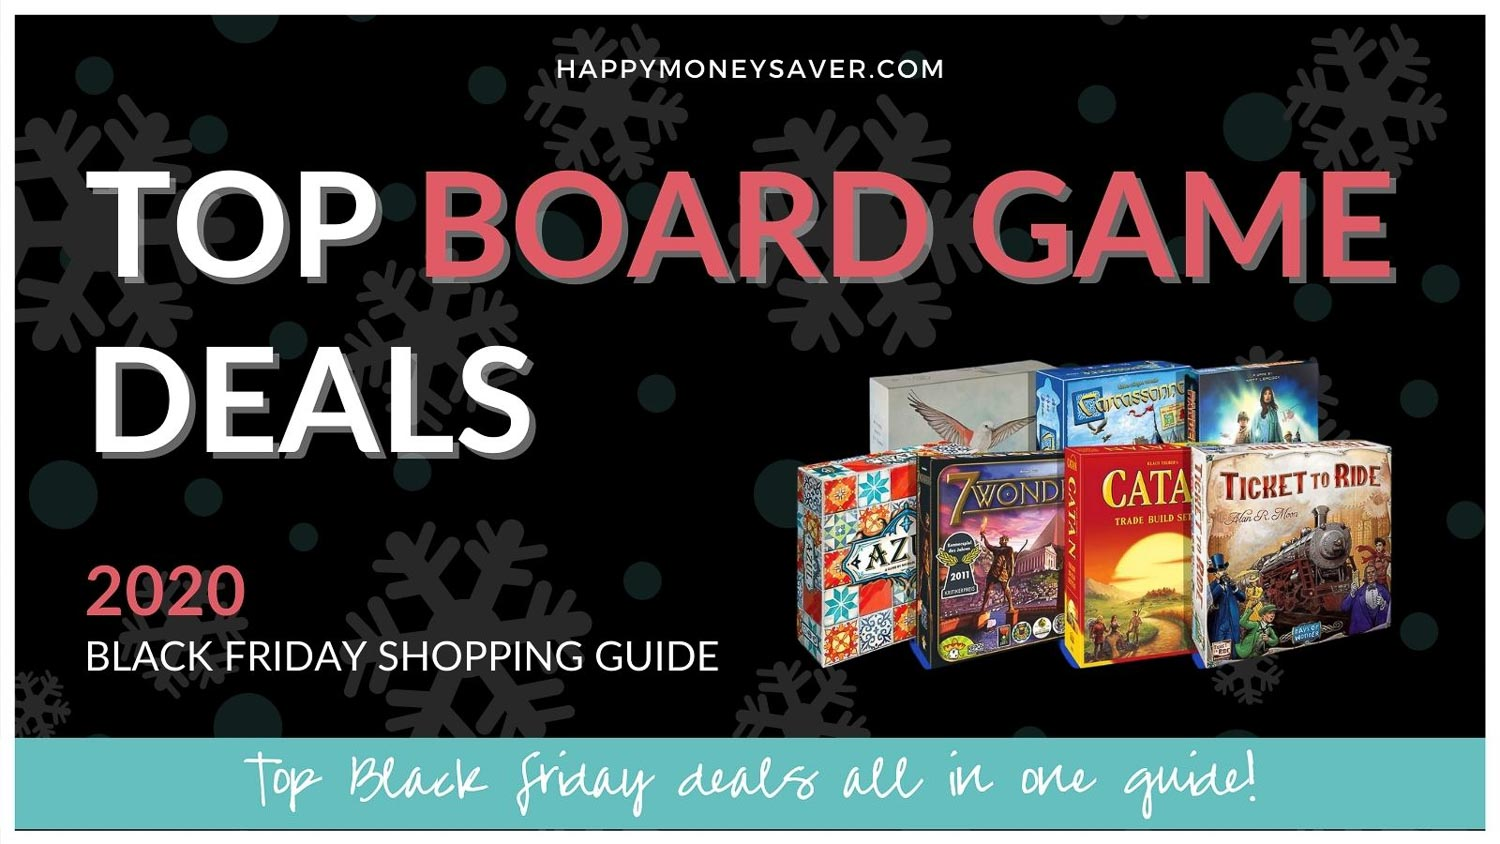 Top Board Game Deals 2020 with game board pictures on the right side with a 2020 shopping guide.